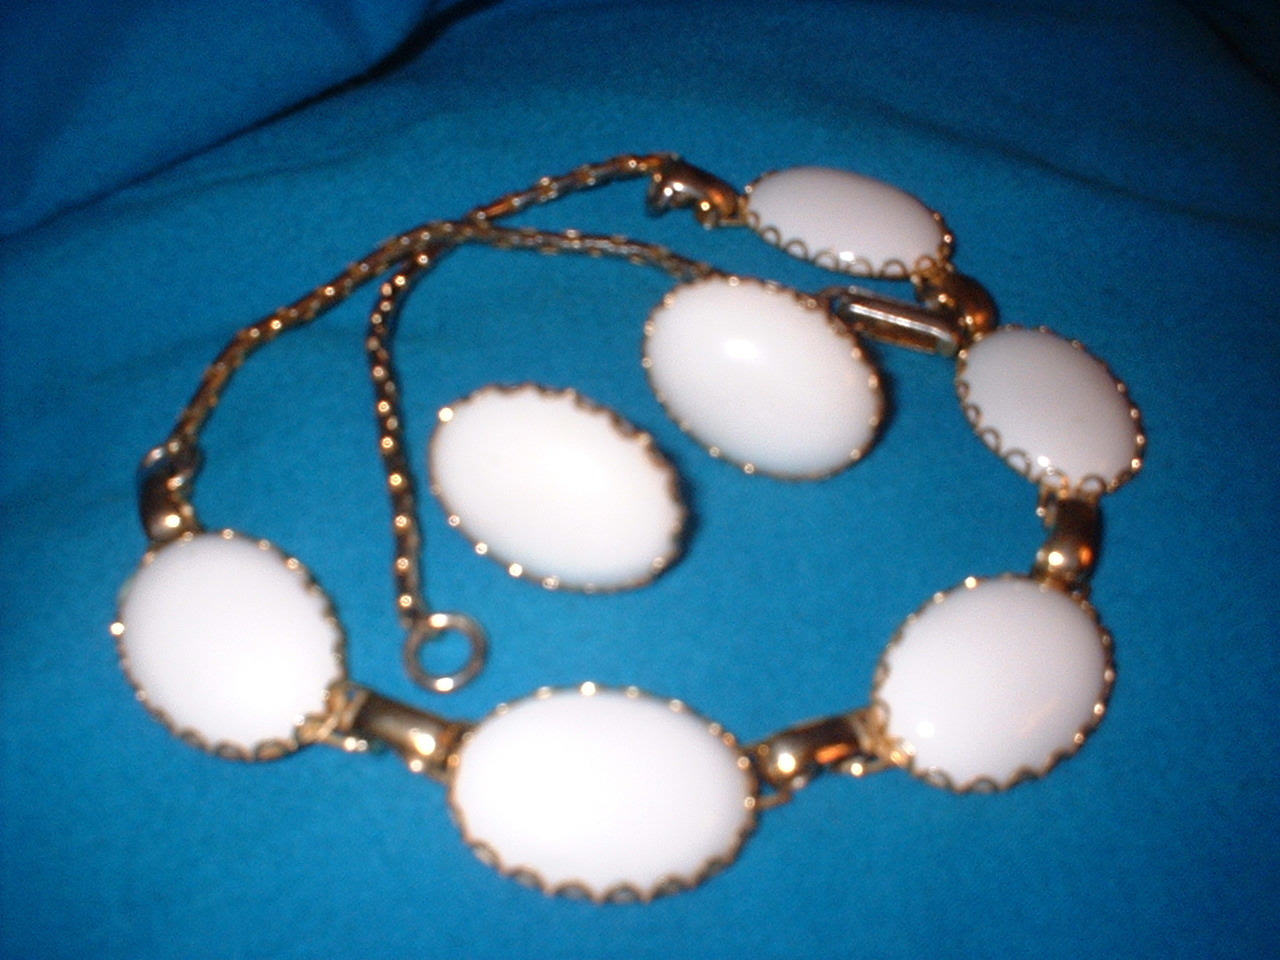 White plastic necklace and earrings set front